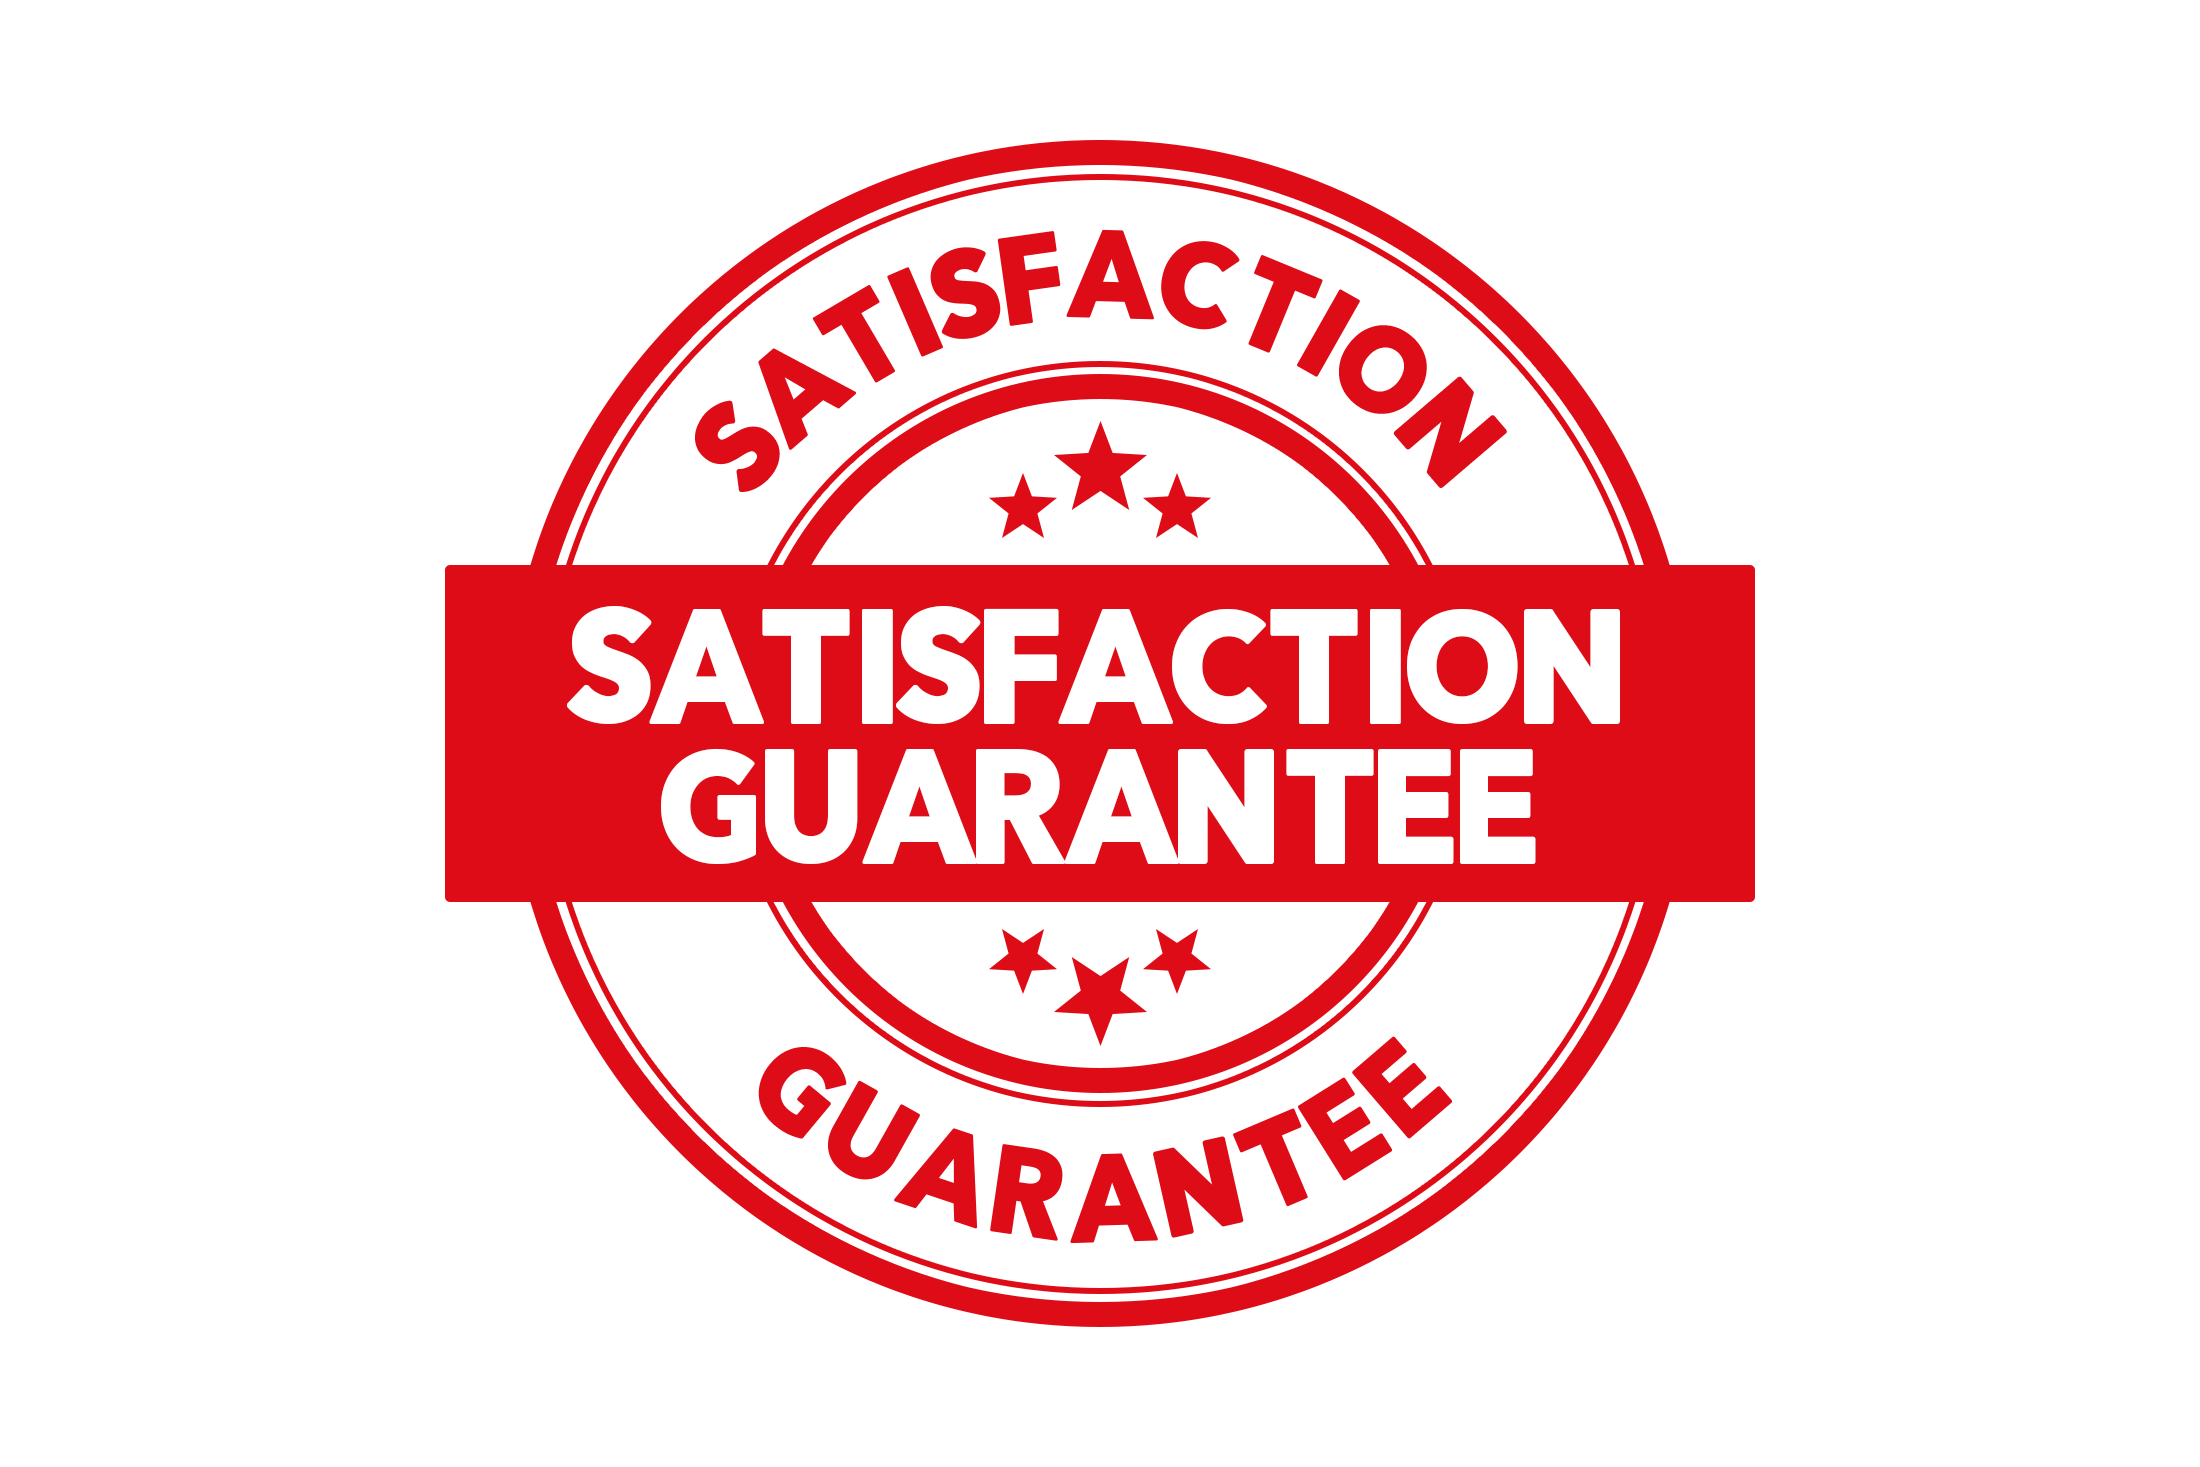 Round satisfaction guarantee stamp PSD